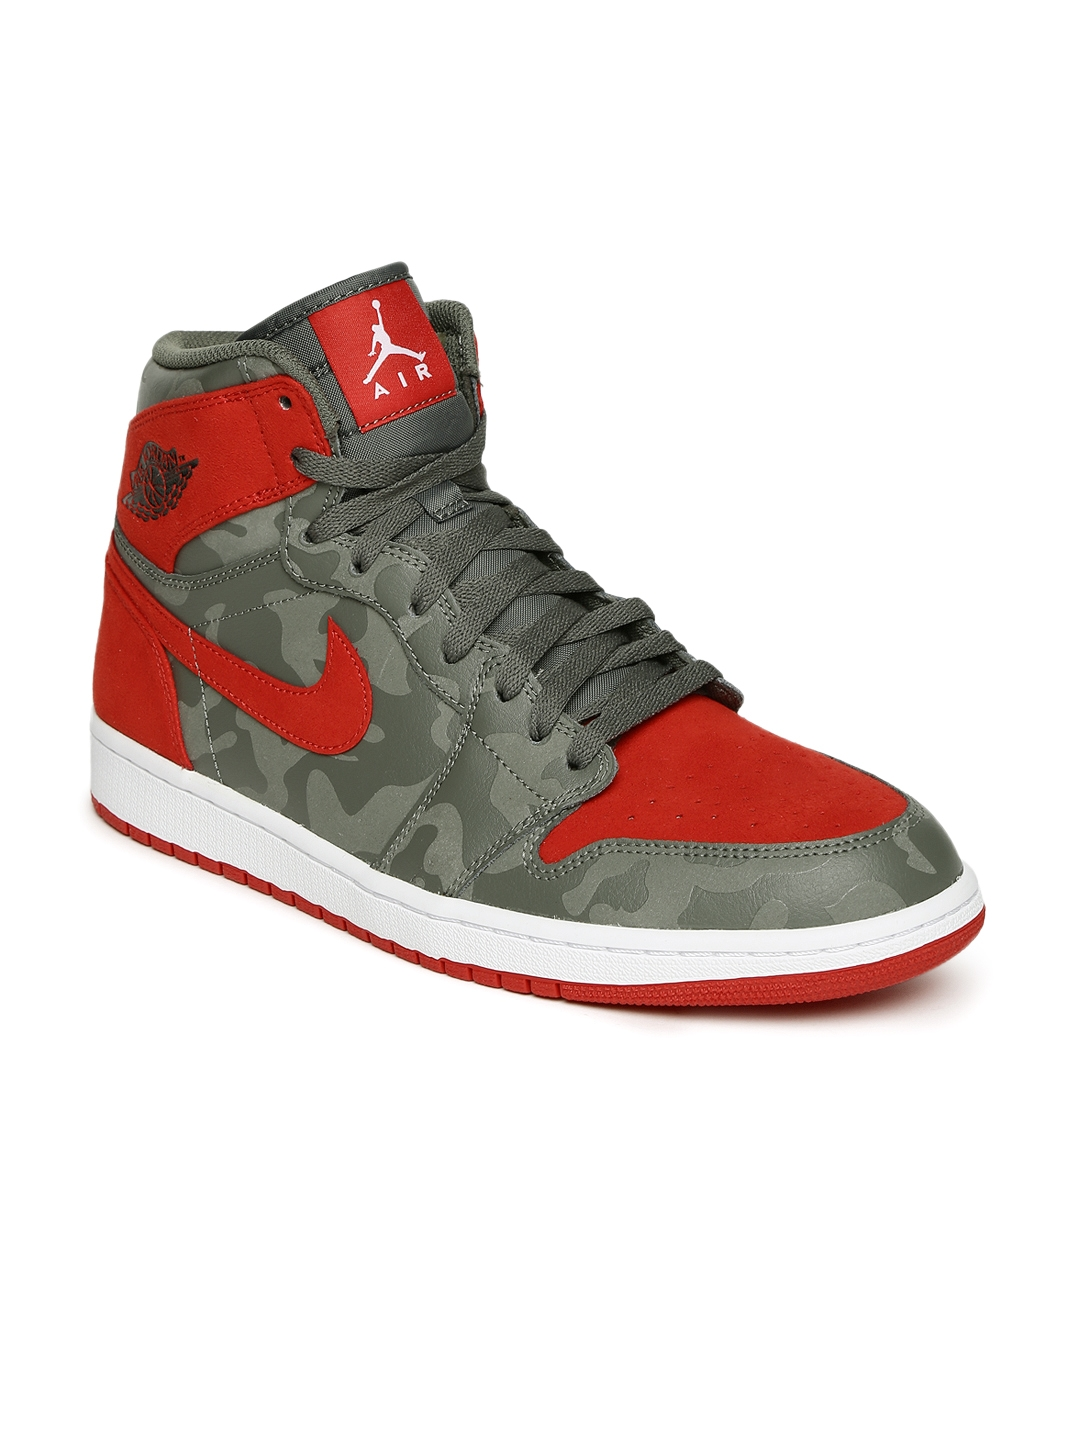 768649db12d1 Buy Nike Men Grey Leather High Top AIR JORDAN 1 RETRO Basketball ...